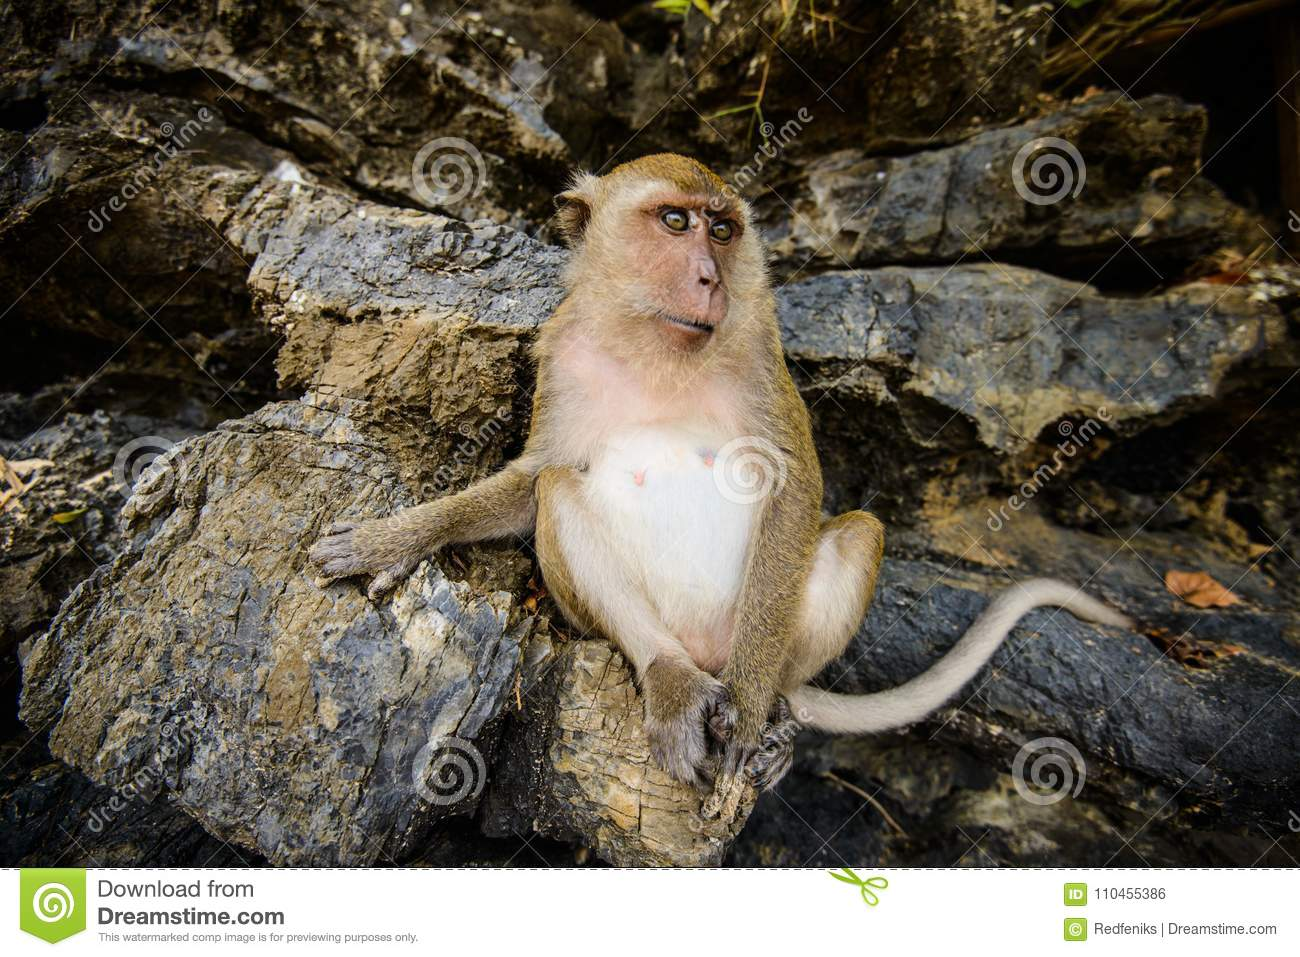 Wild Monkey From The Jungle Krabi Thailand Stock Photo